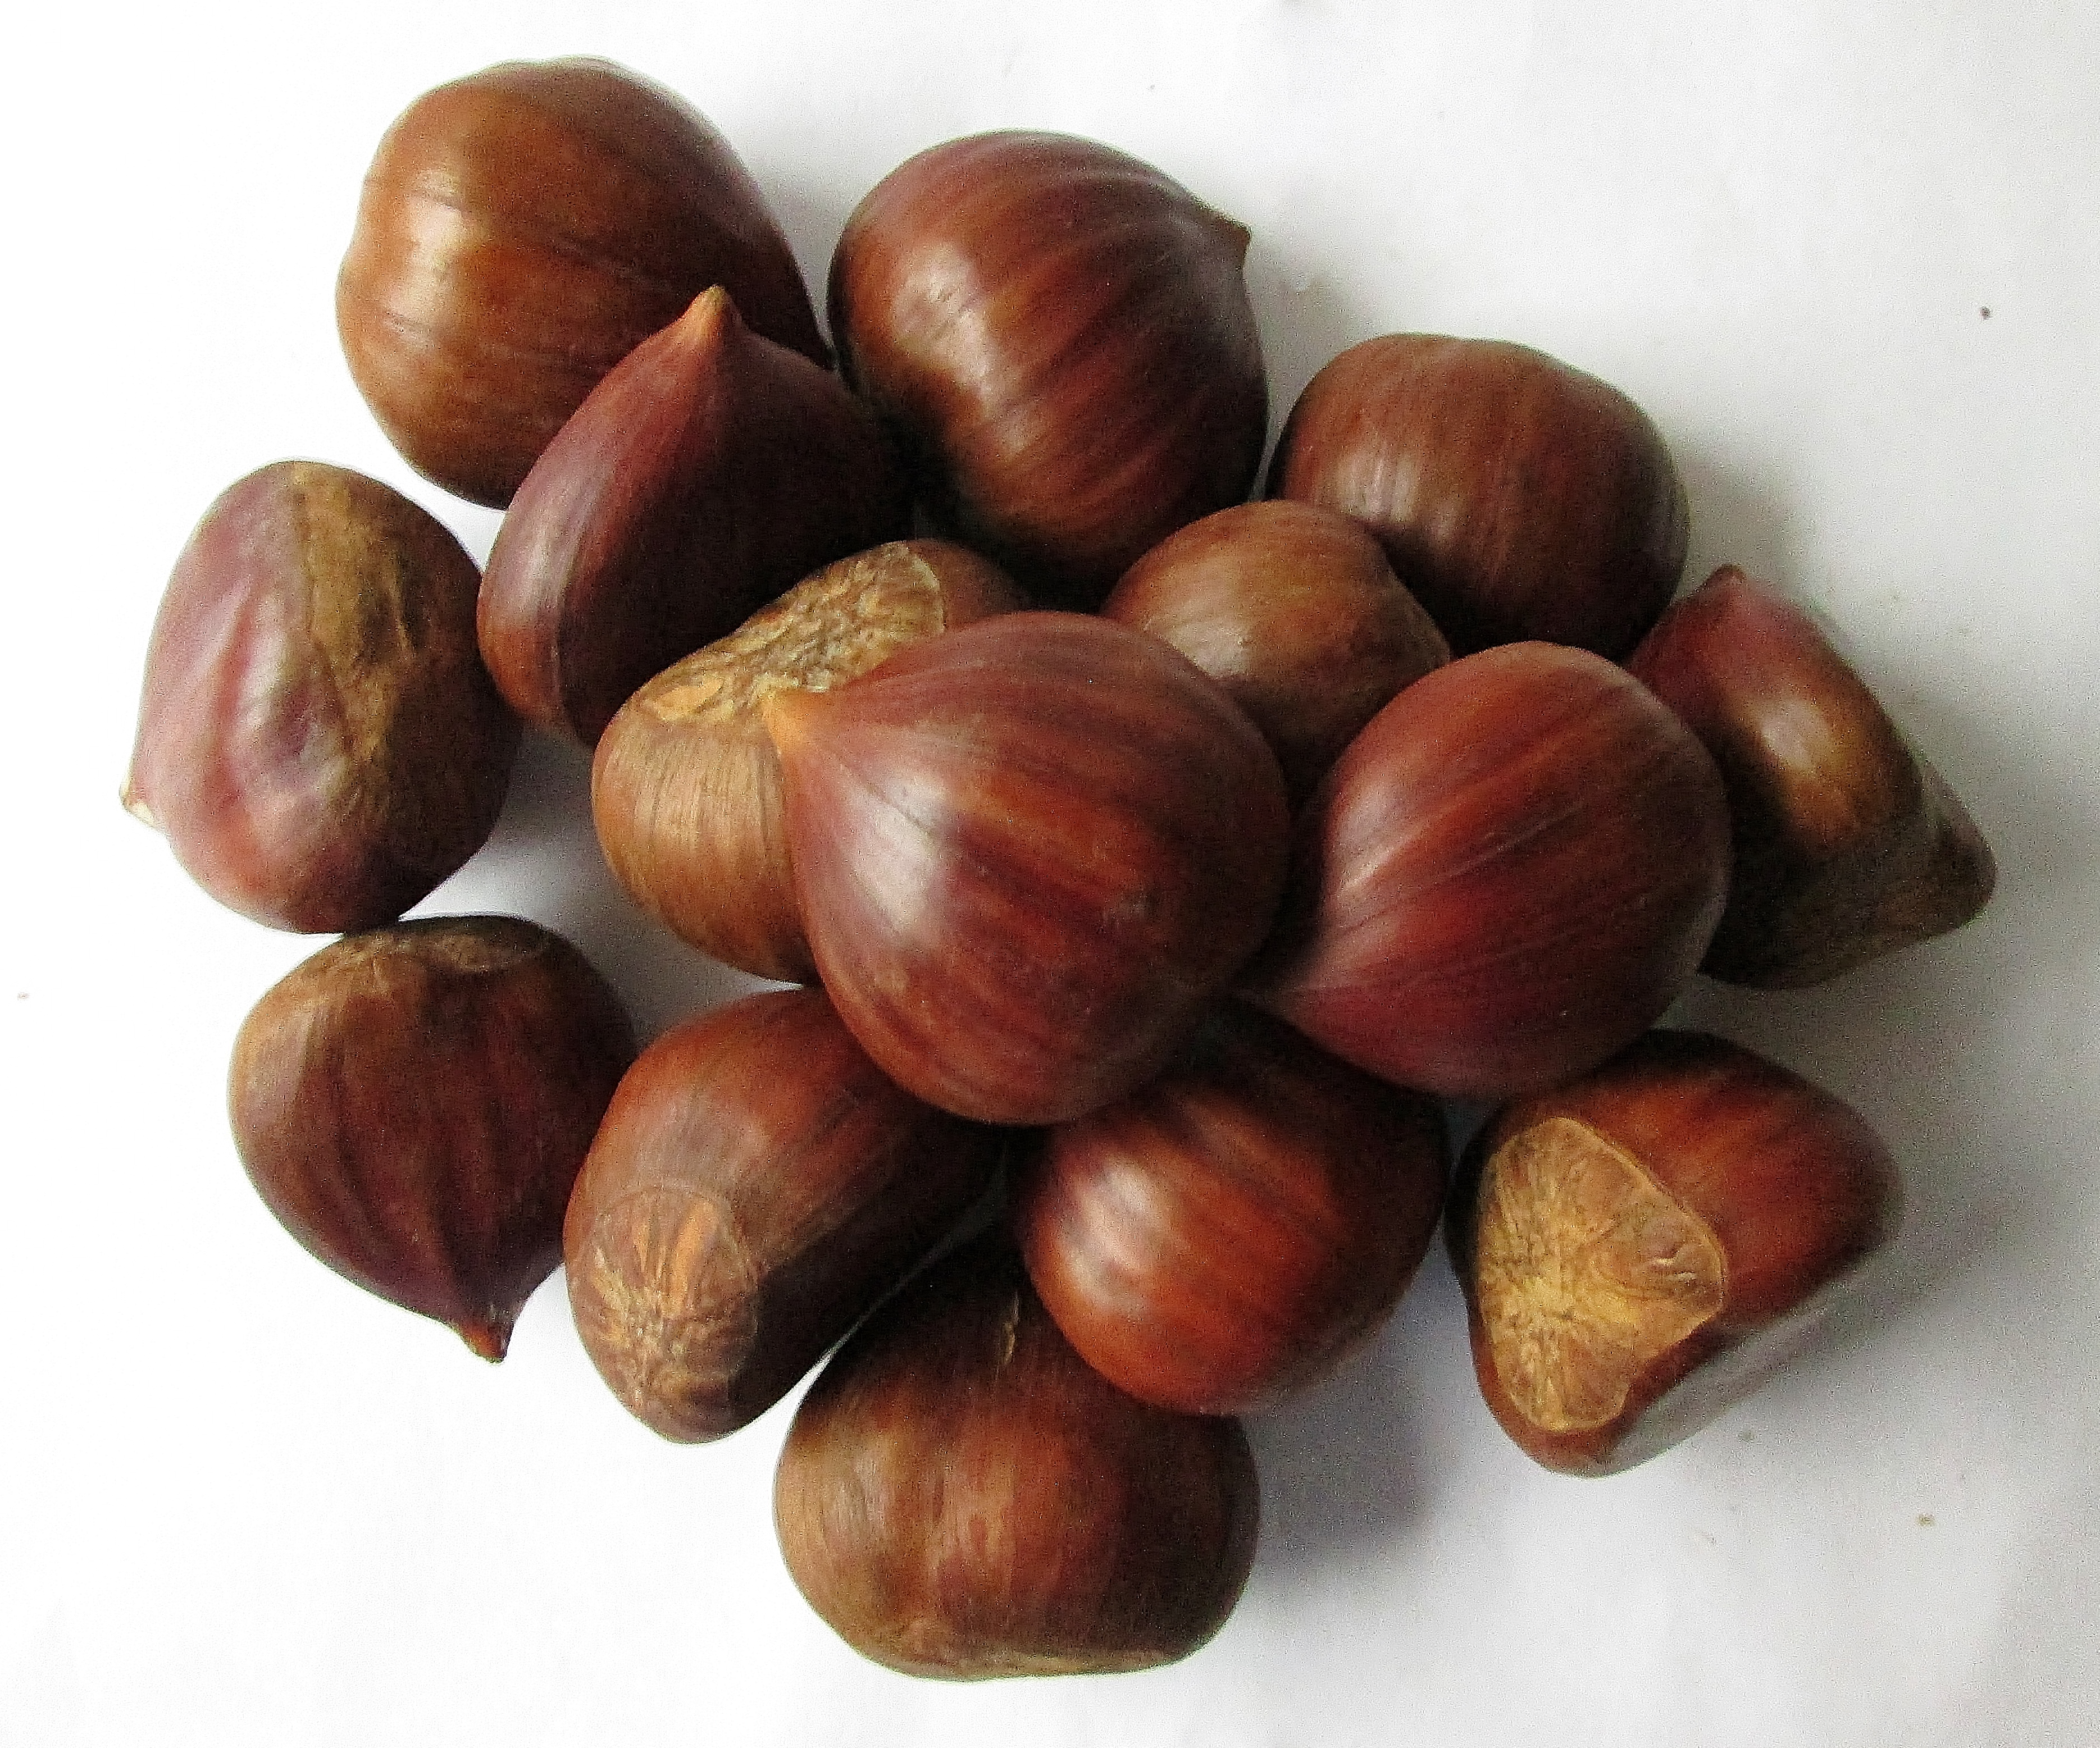 Roasted chestnuts from the nutcracker alison 39 s for The chestnut